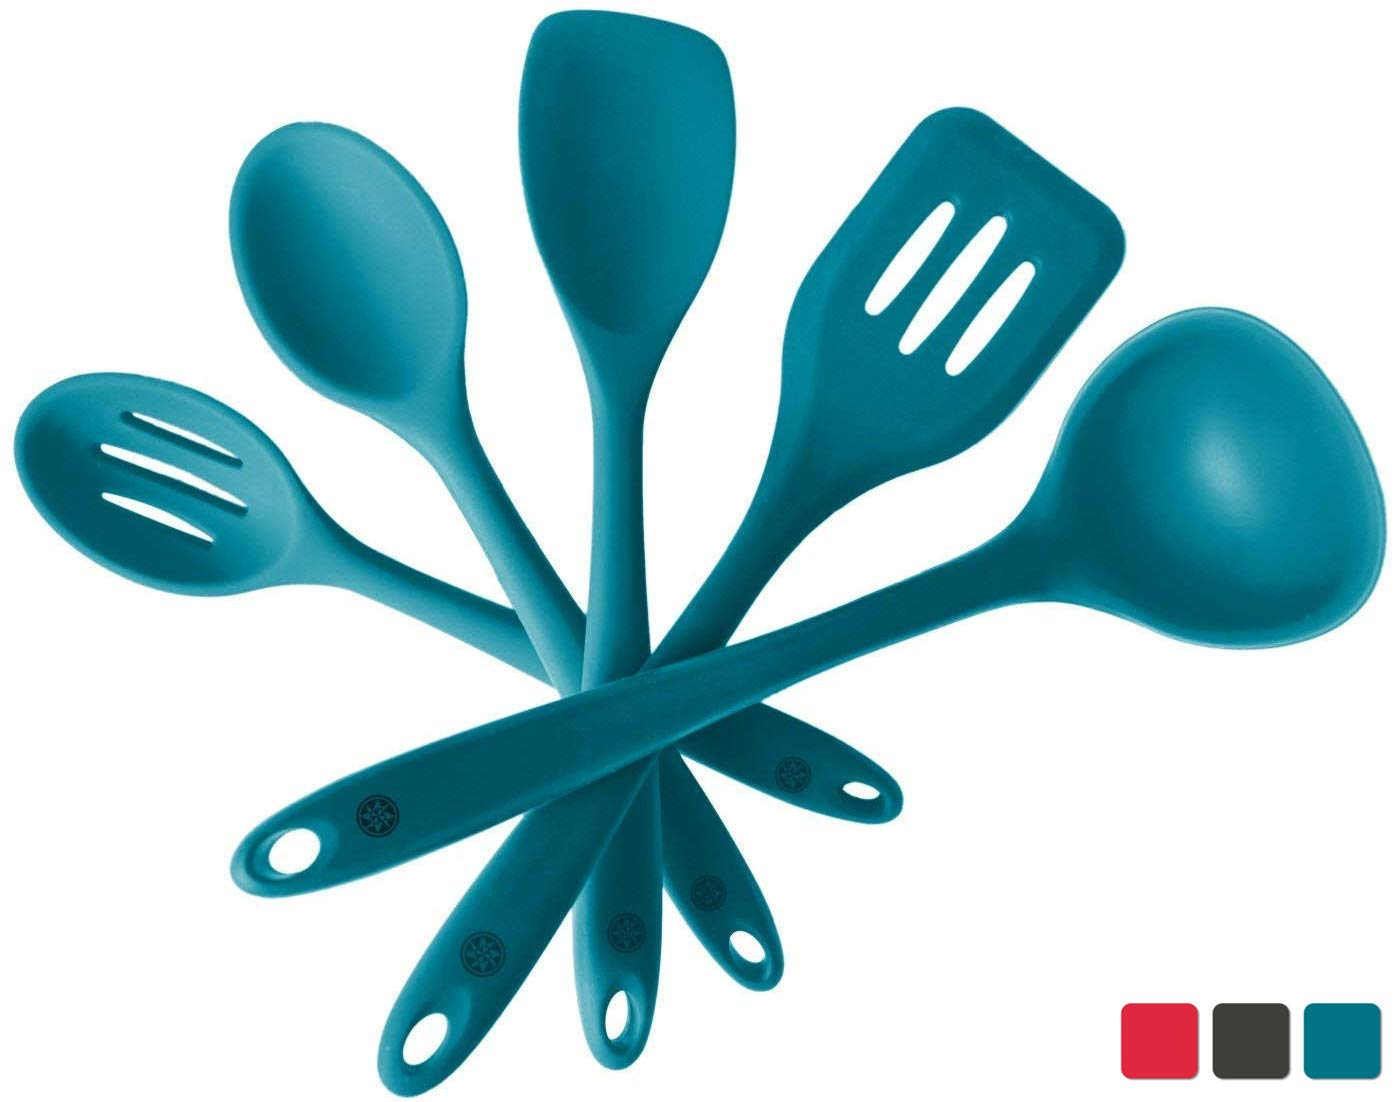 "StarPack Premium Silicone Kitchen Utensil Set (5 Piece Set, 10.5"") - High Heat Resistant to 600°F, Hygienic One Piece Design Spatulas, Serving and Mixing Spoons (Teal Blue)"